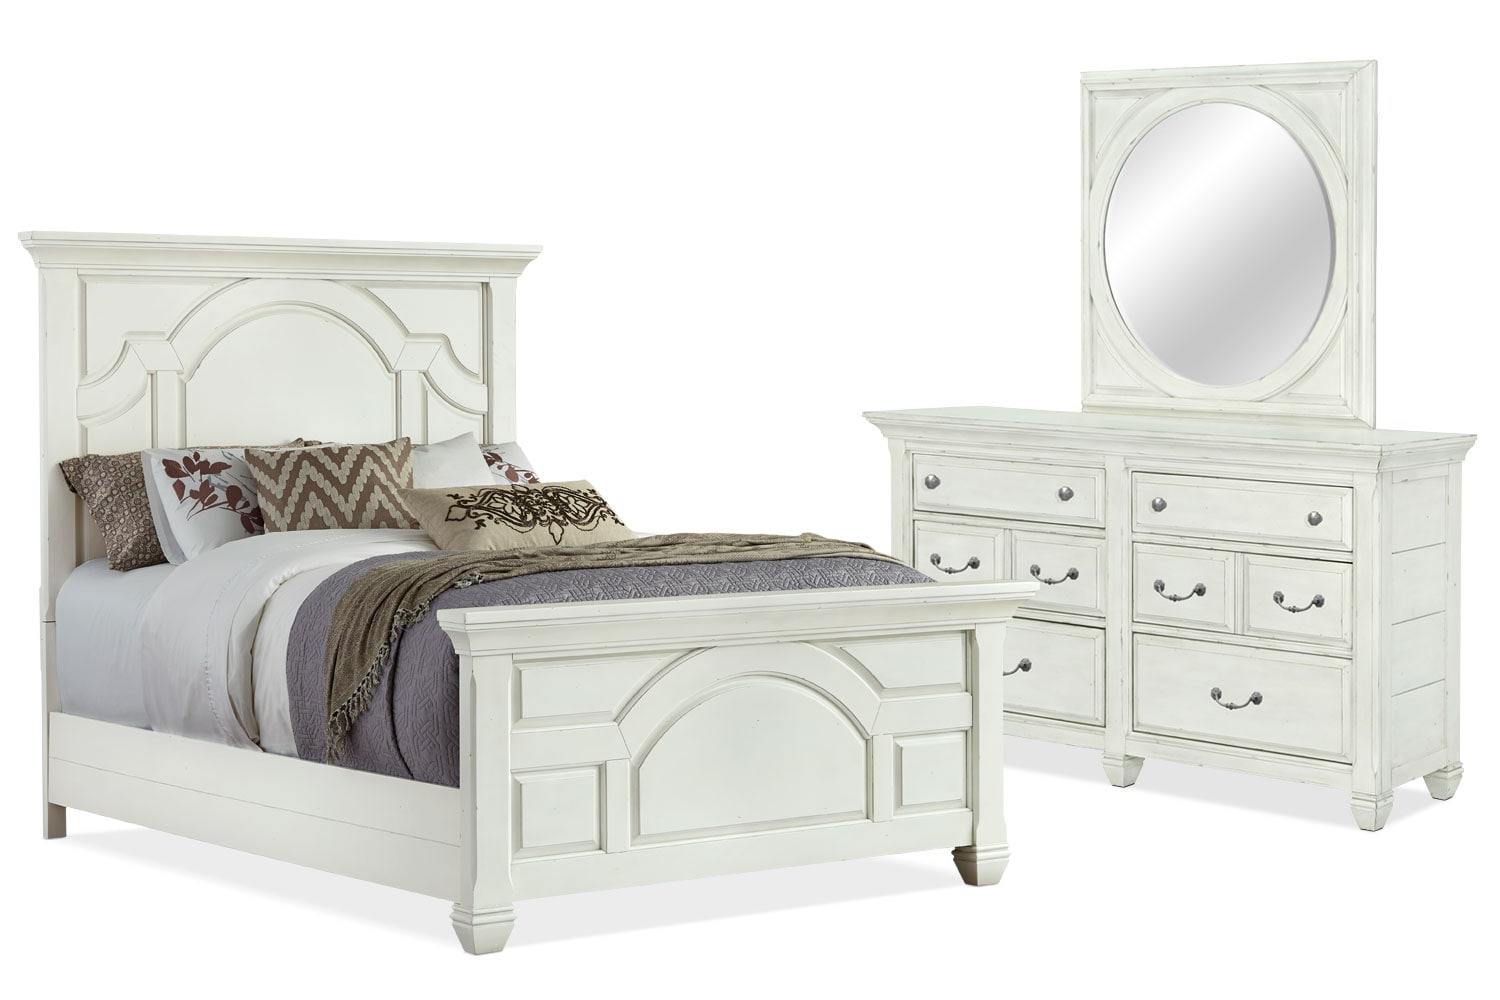 Bedroom Furniture - Hancock Park 5-Piece Queen Bedroom Package